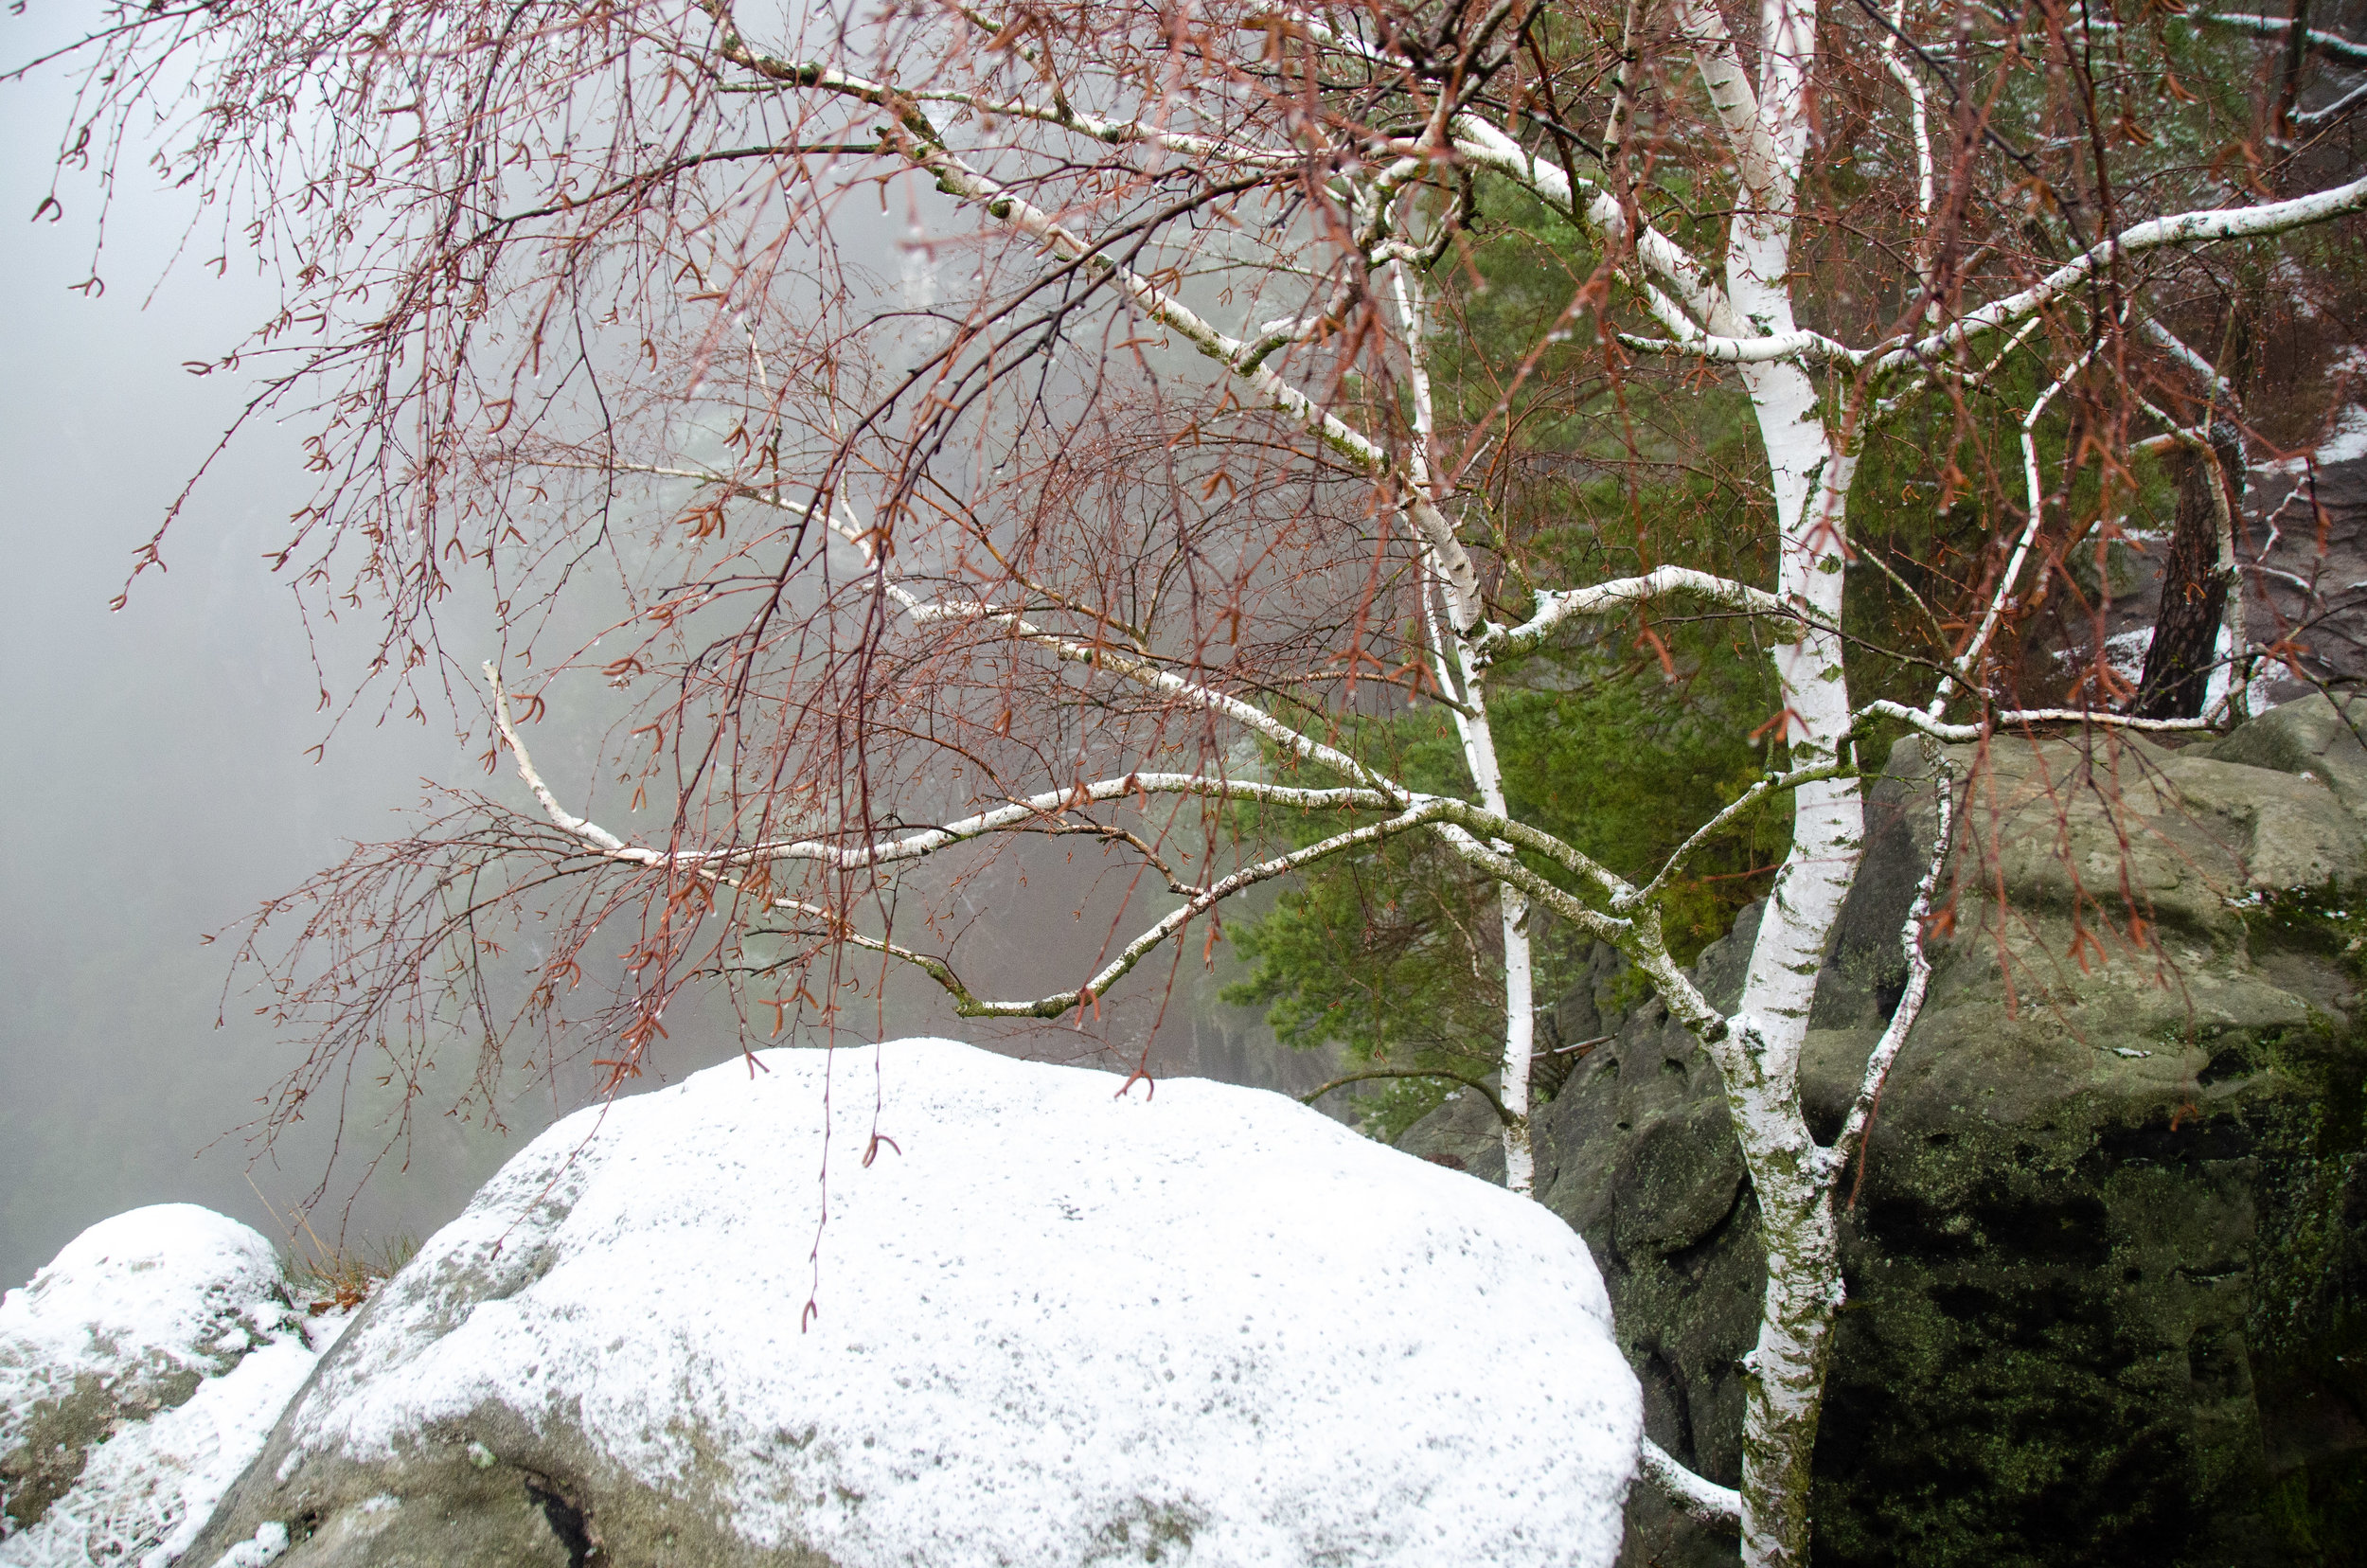 Birches in the snow- the higher we climbed, the more wintry it became